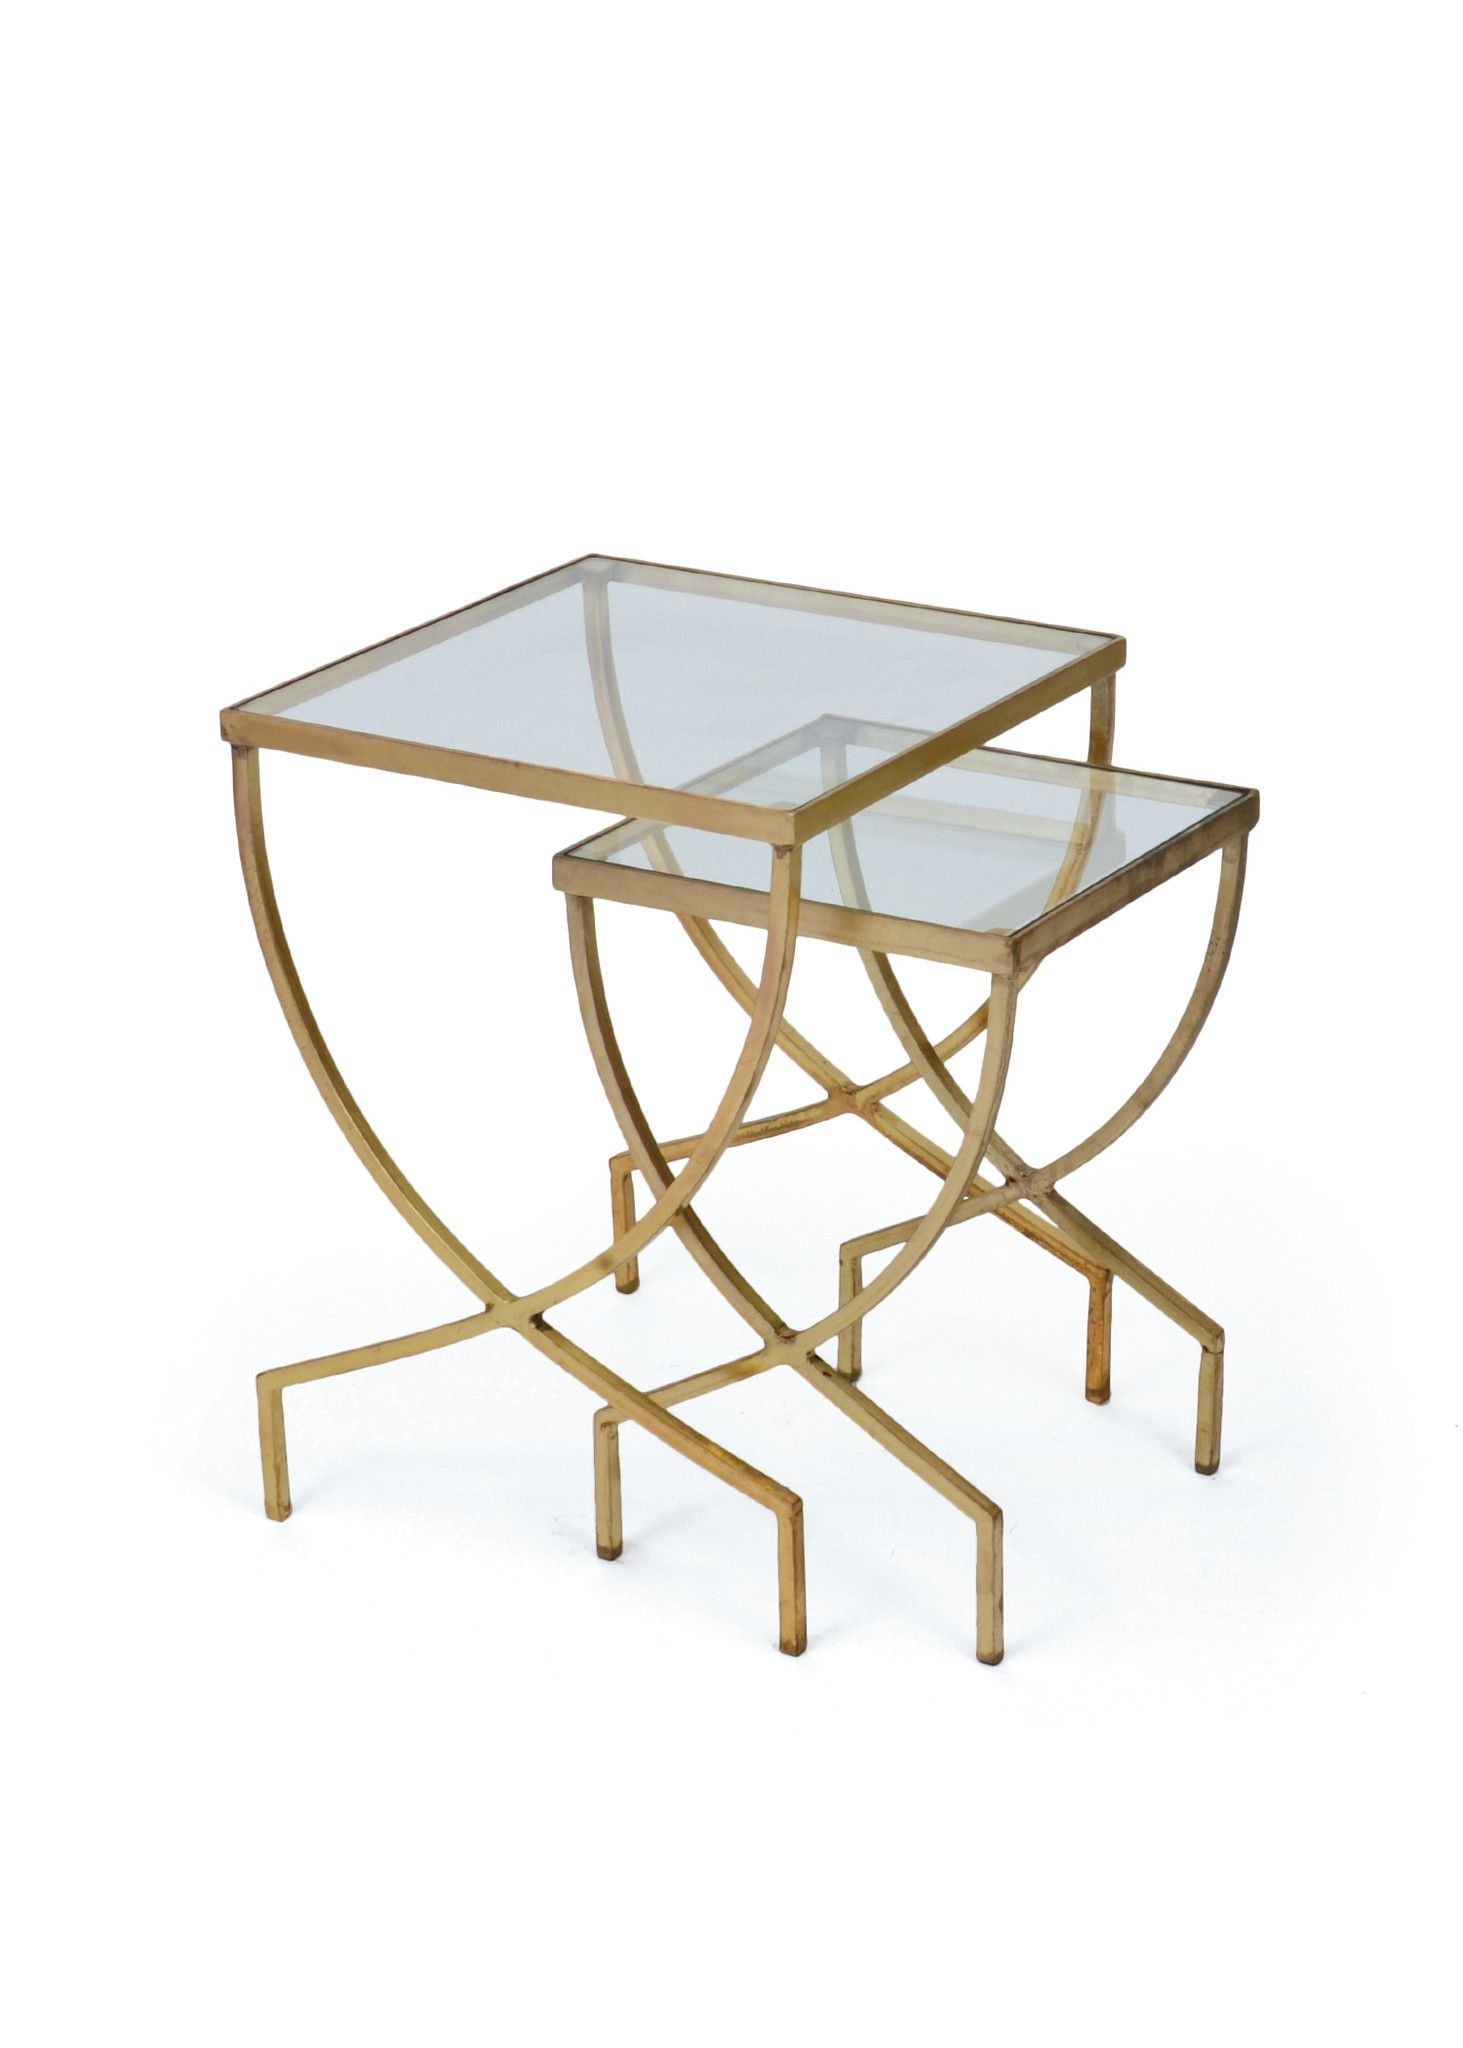 Harvey nesting tables in brushed brass with glass top set of 2 harvey nesting tables in brushed brass with glass top set of 2 watchthetrailerfo